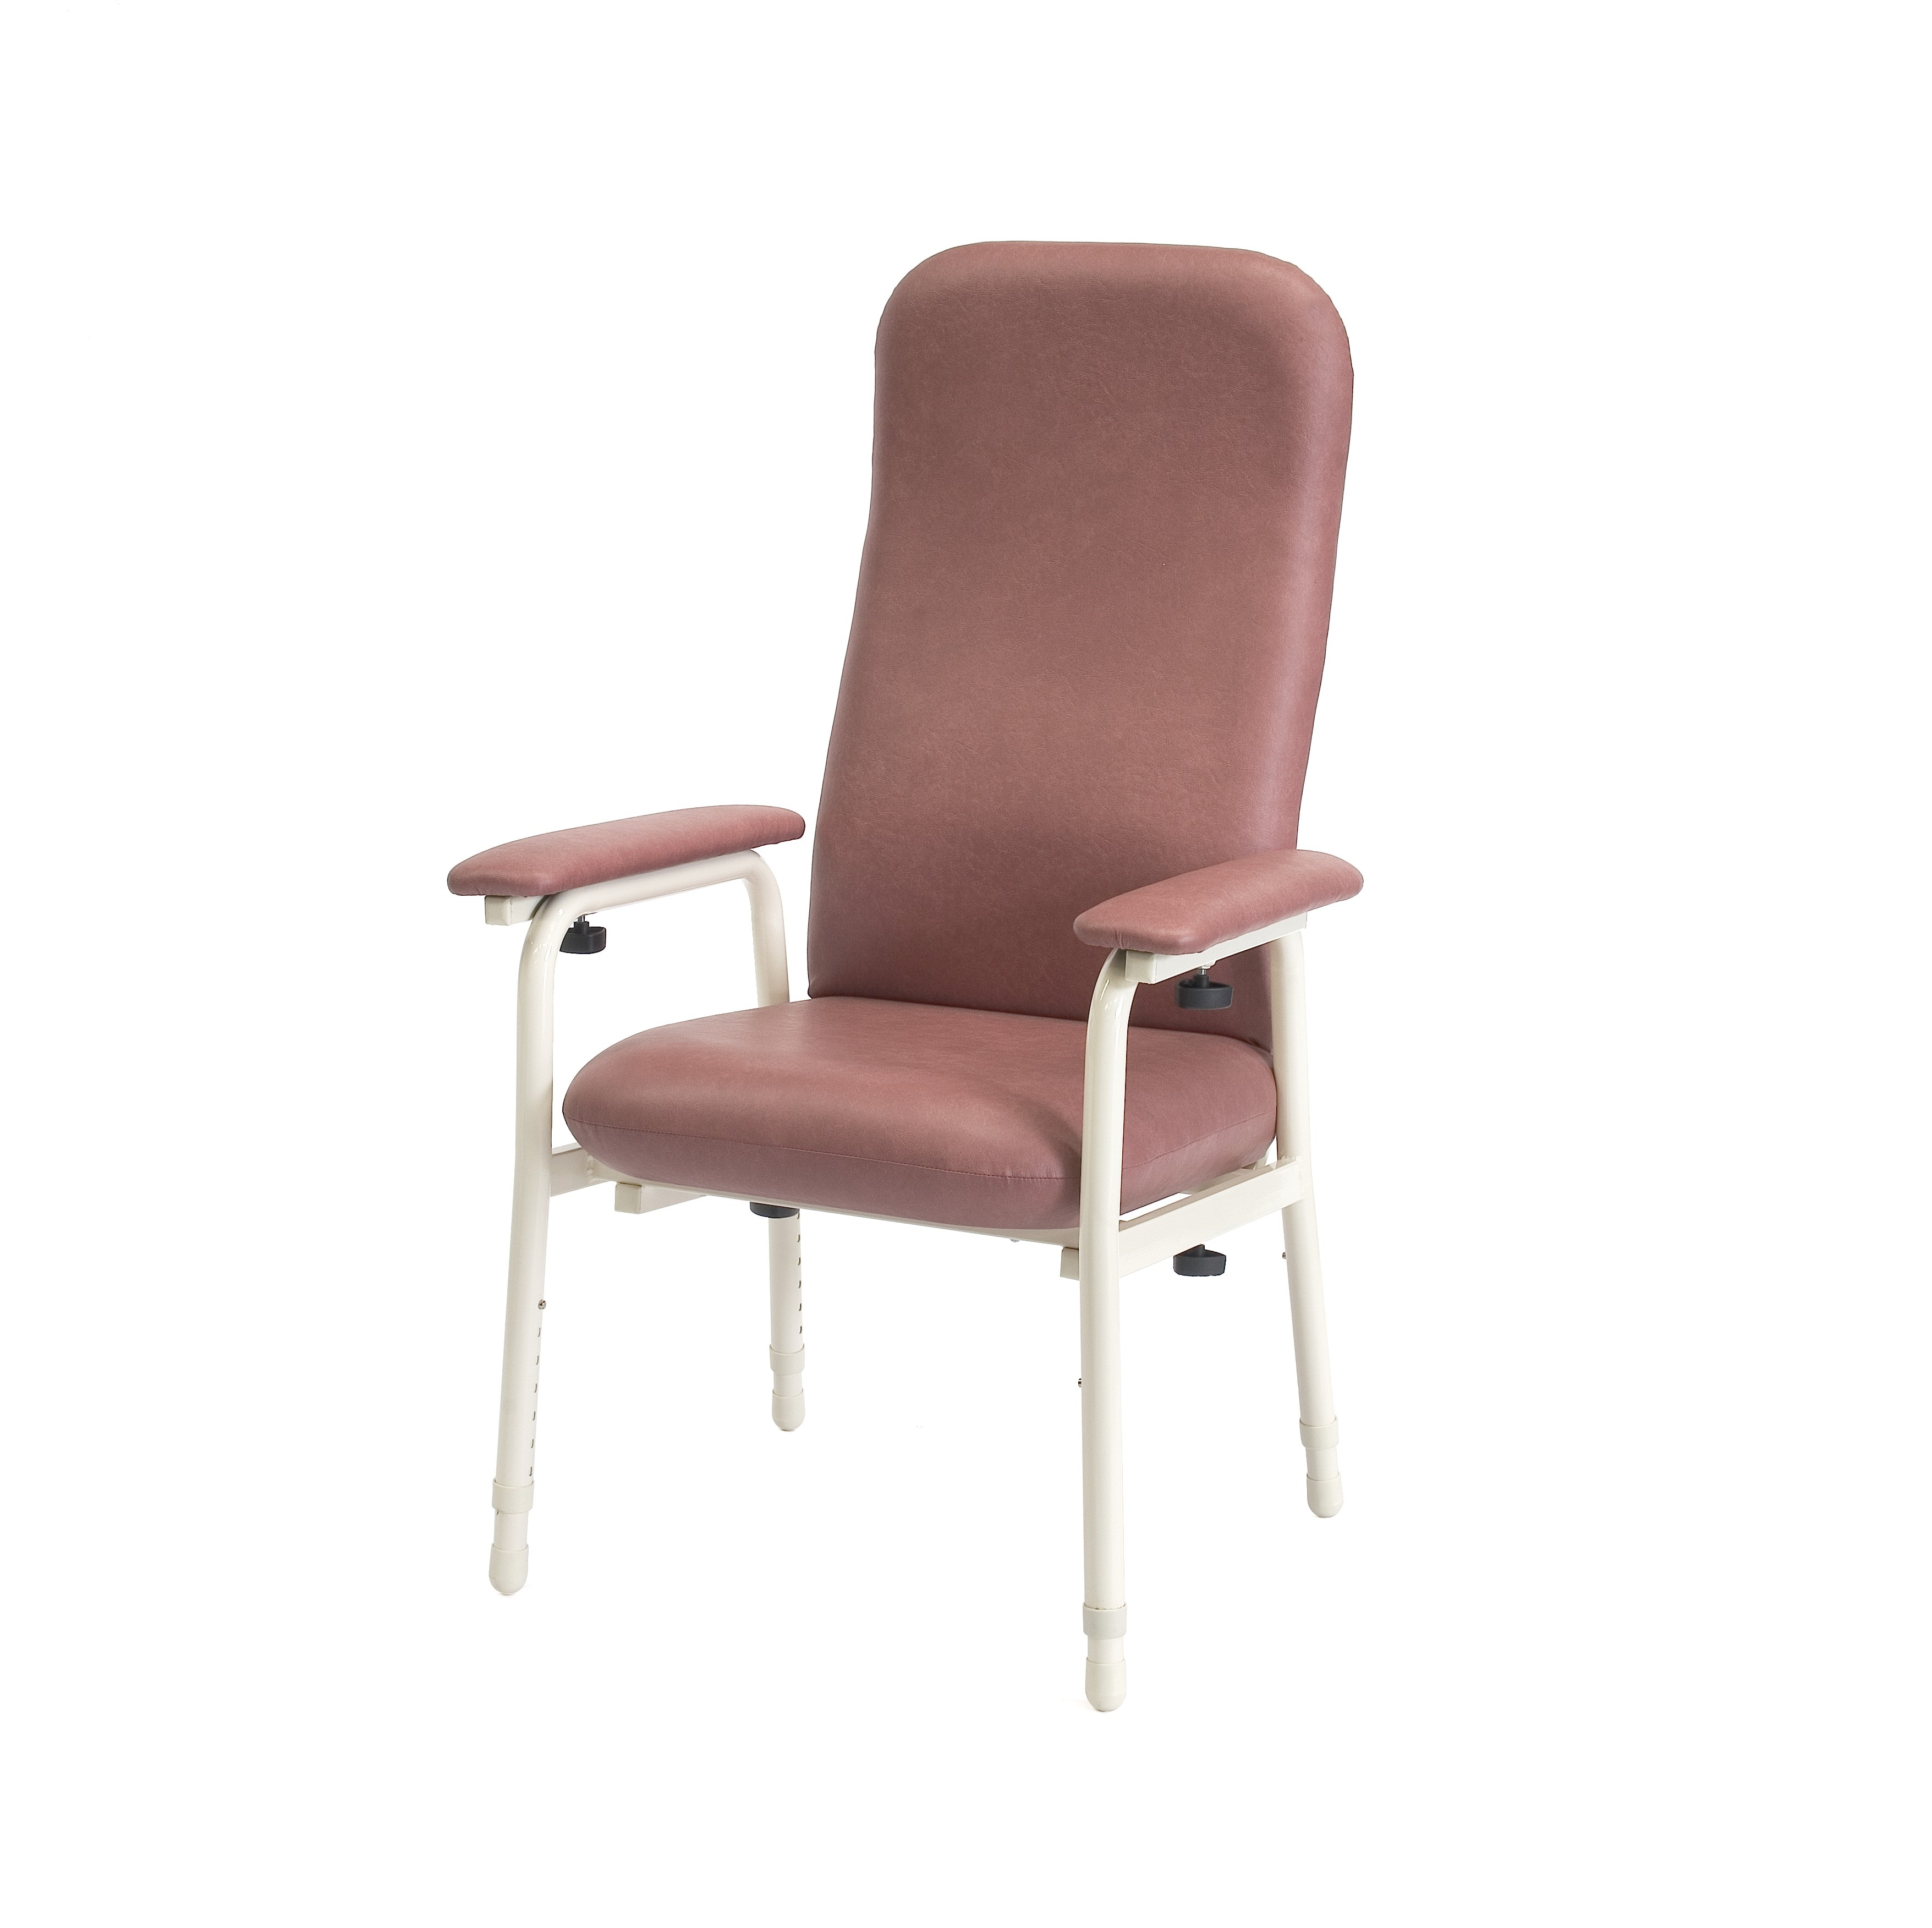 High Back Day Chair (HIRE)